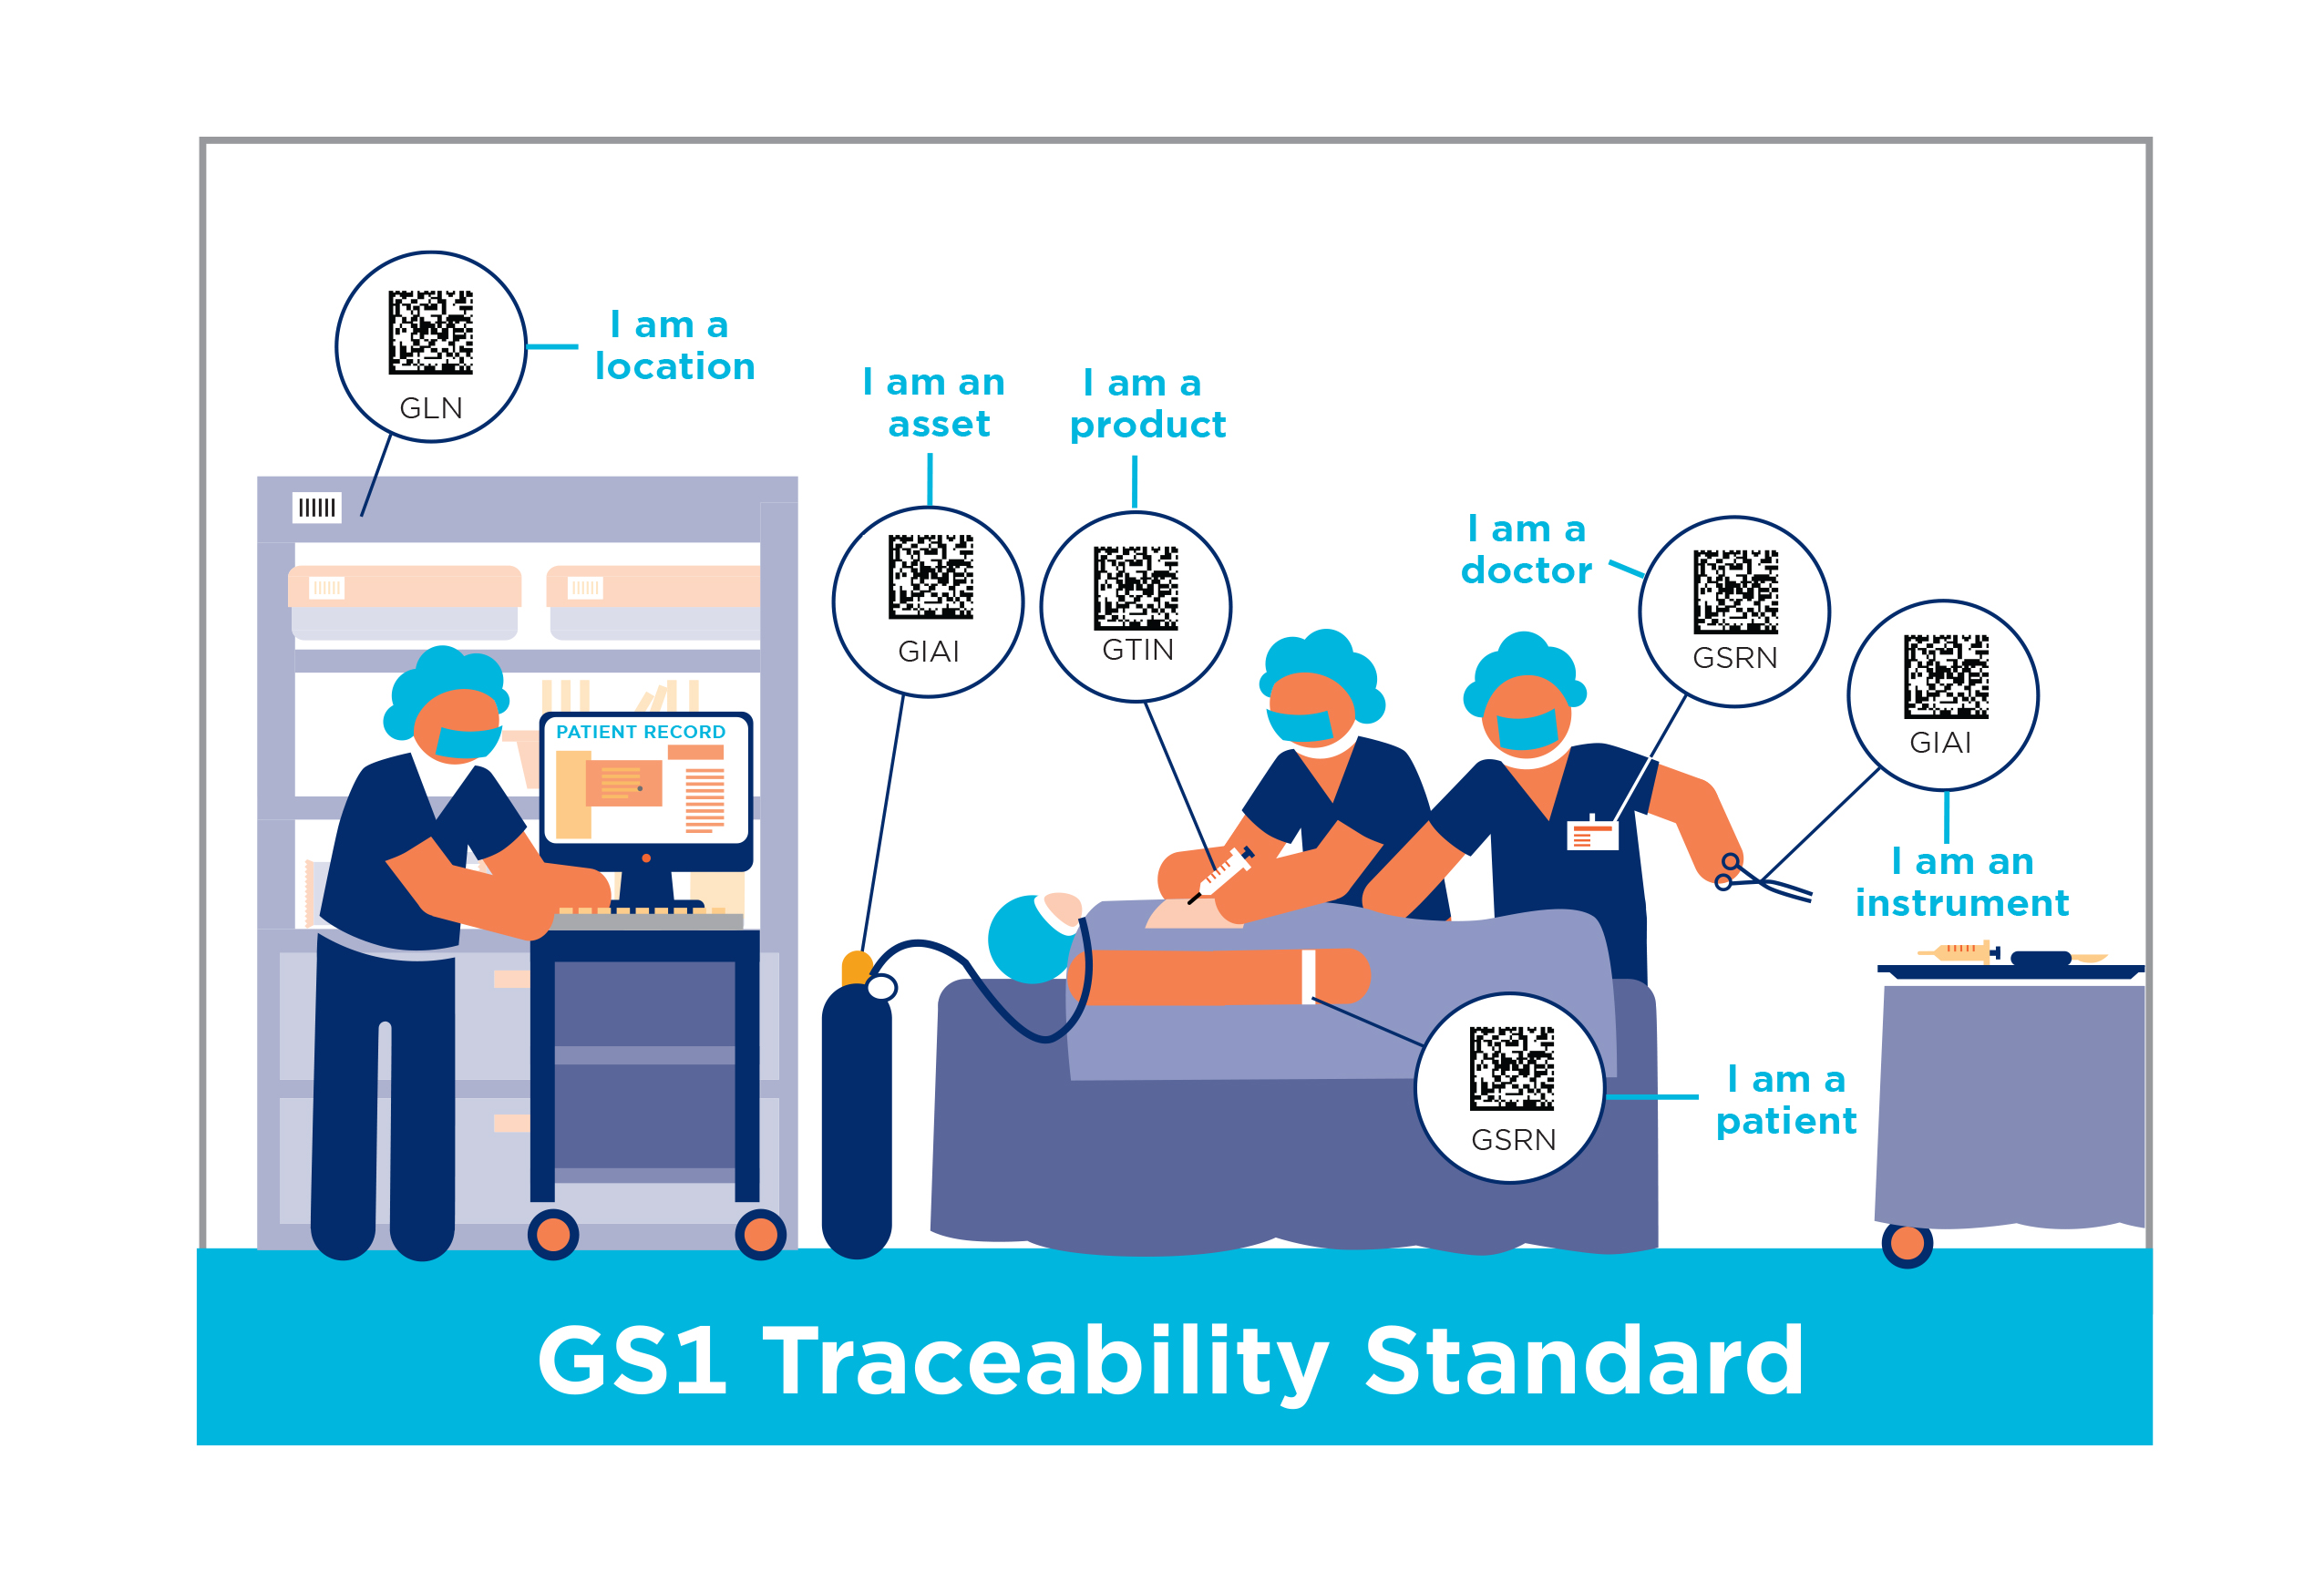 GS1 Healthcare Traceability Standard Theatre Image